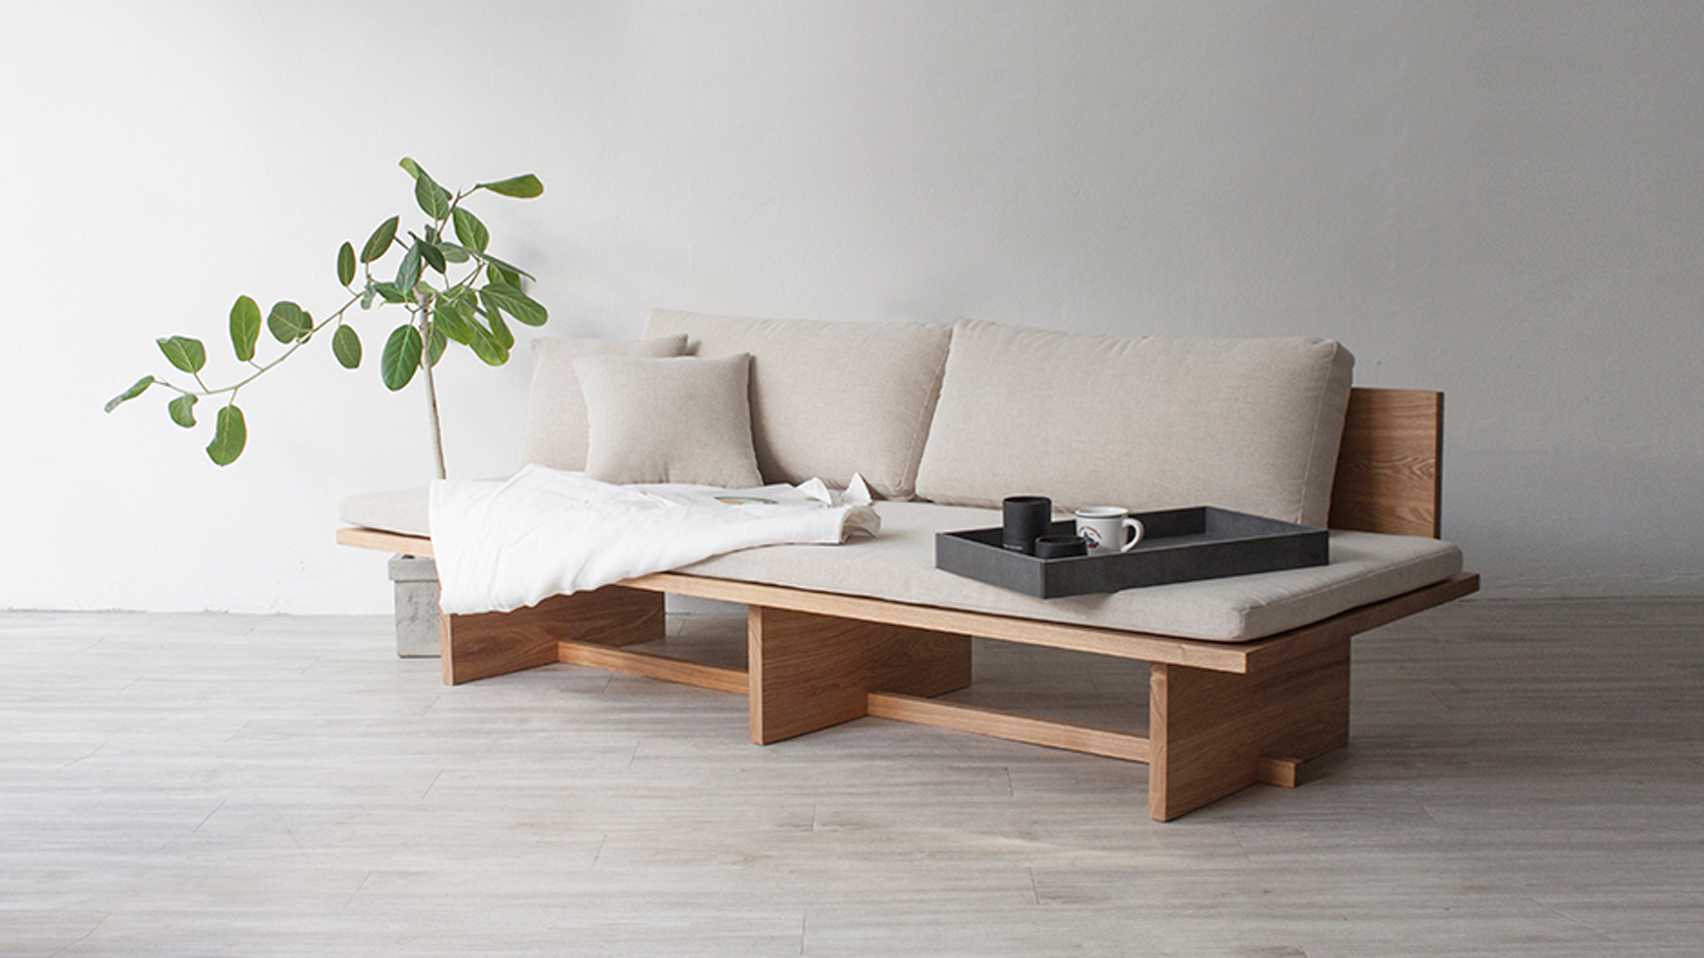 Blank daybed or sofa is based on traditional Korean furniture drawings and it mixes modern Western and traditional Eastern views